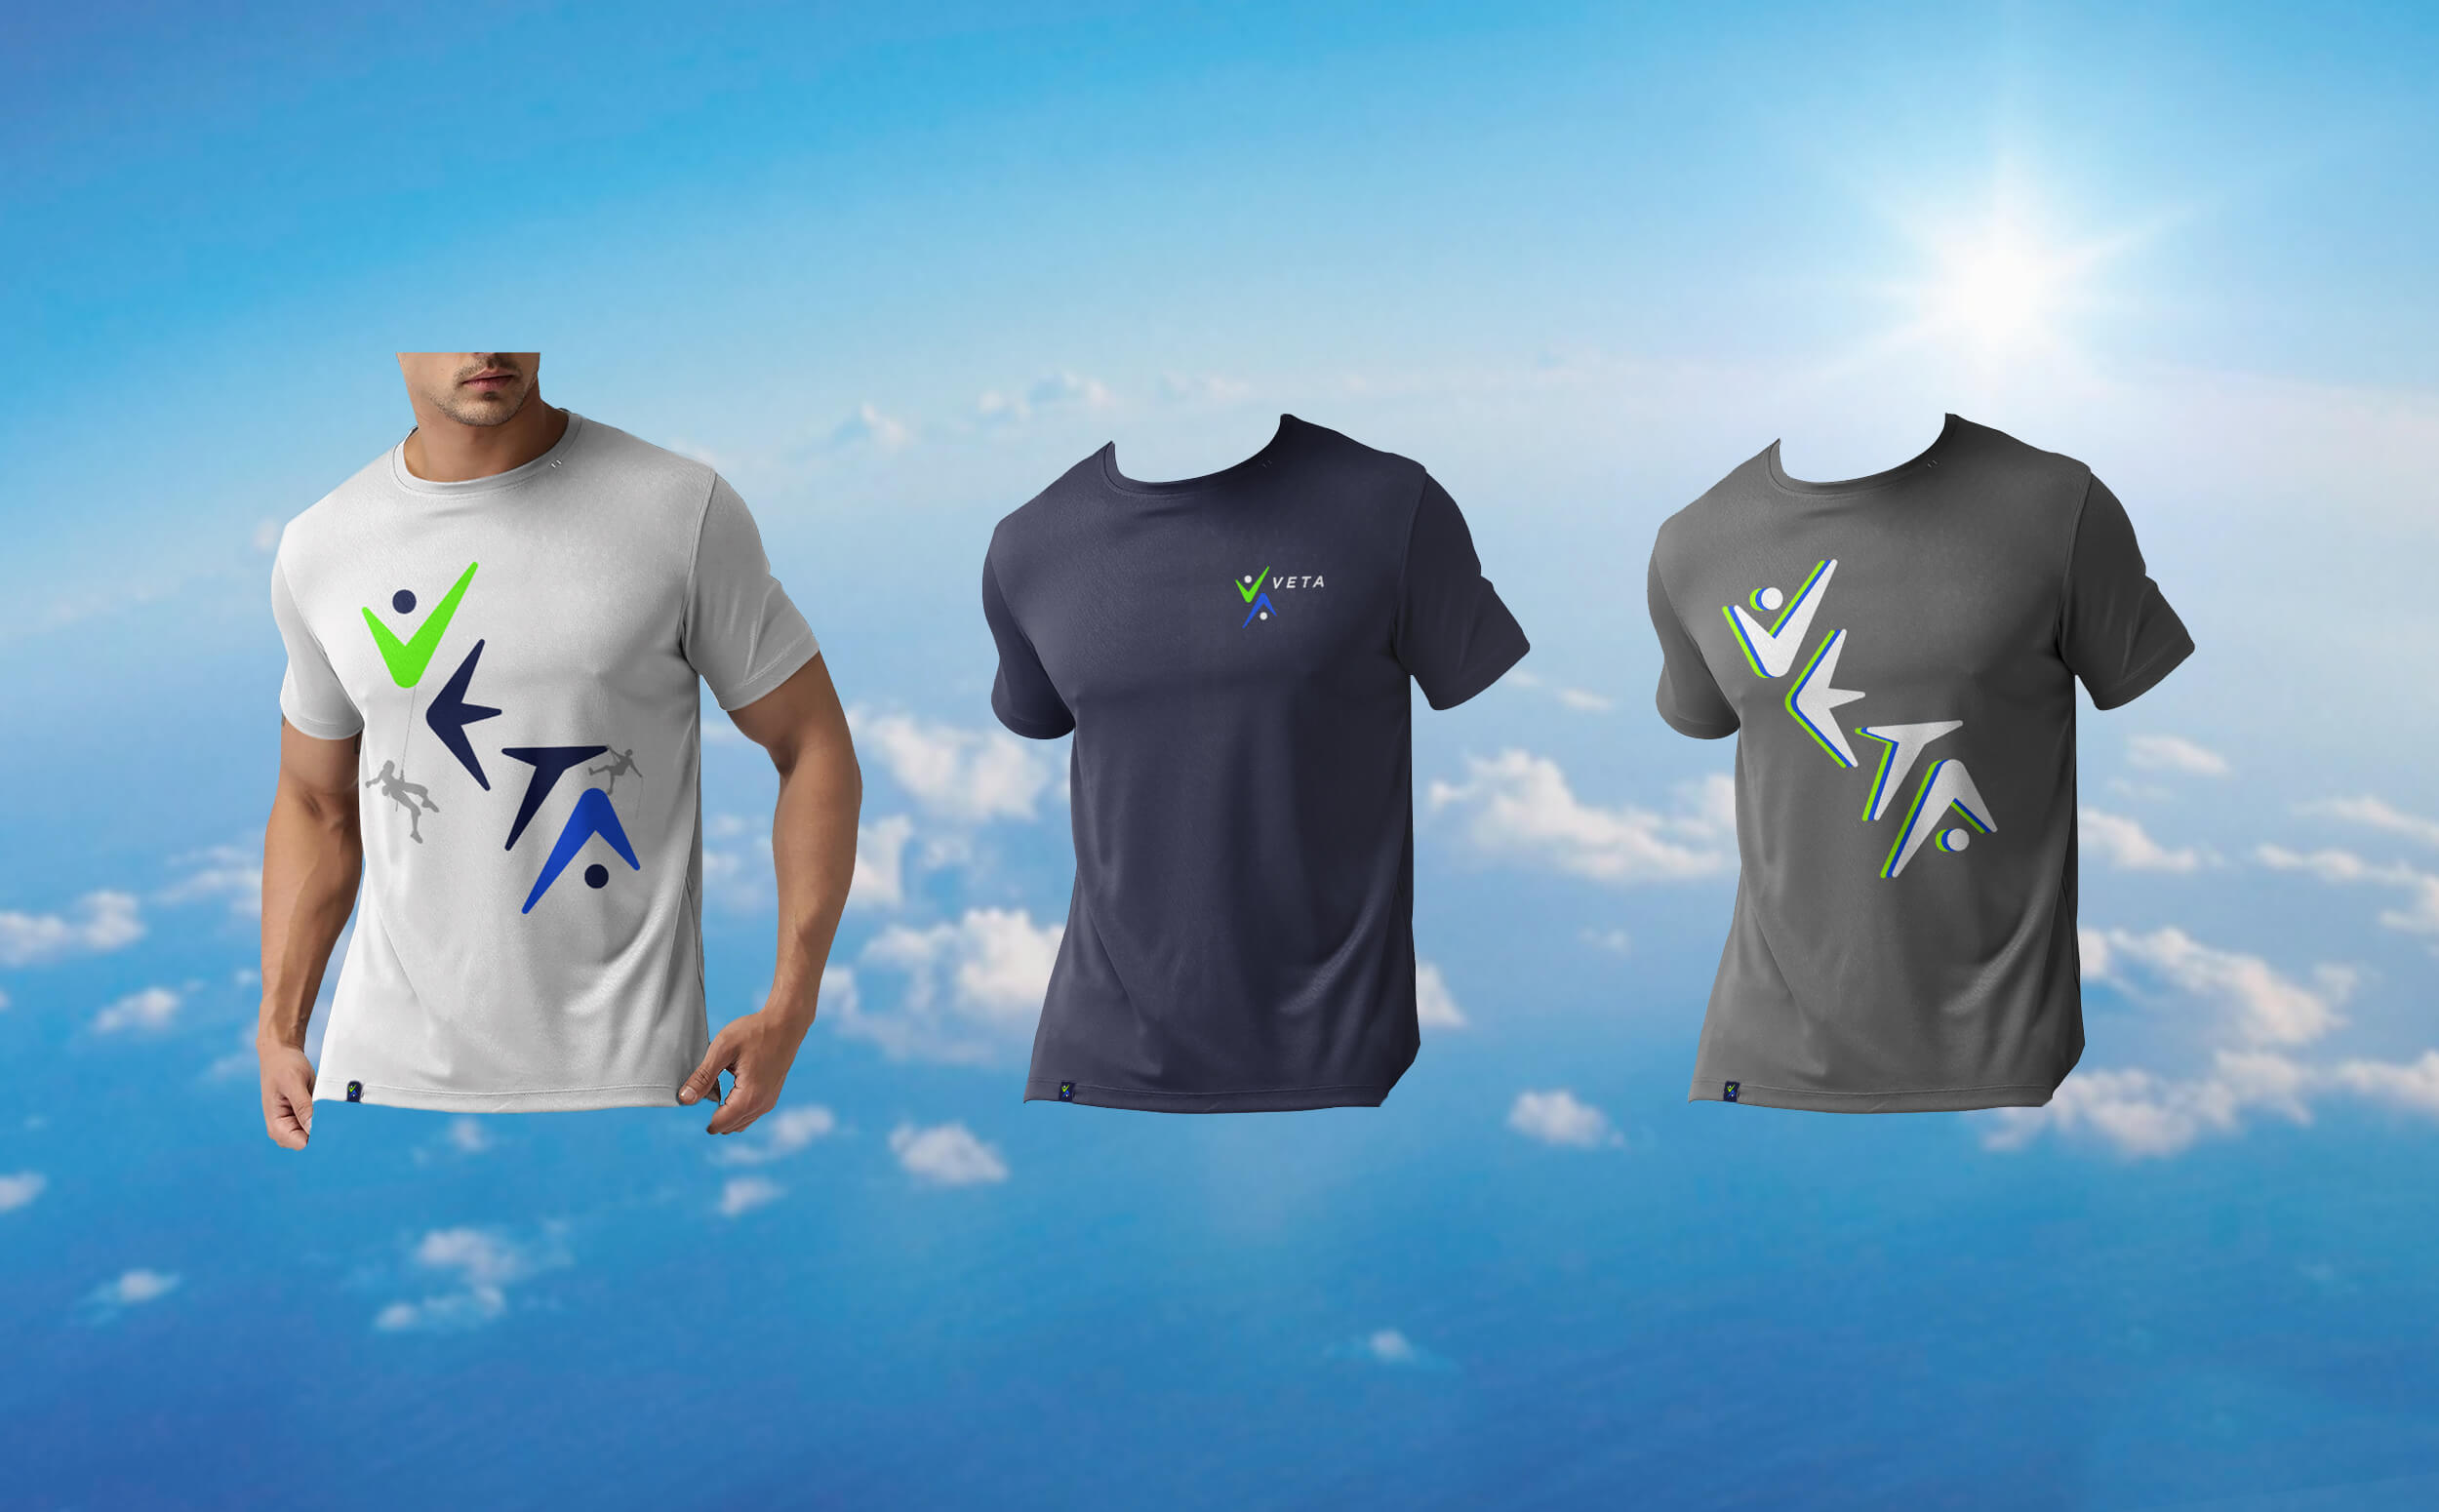 veta-shirts copy